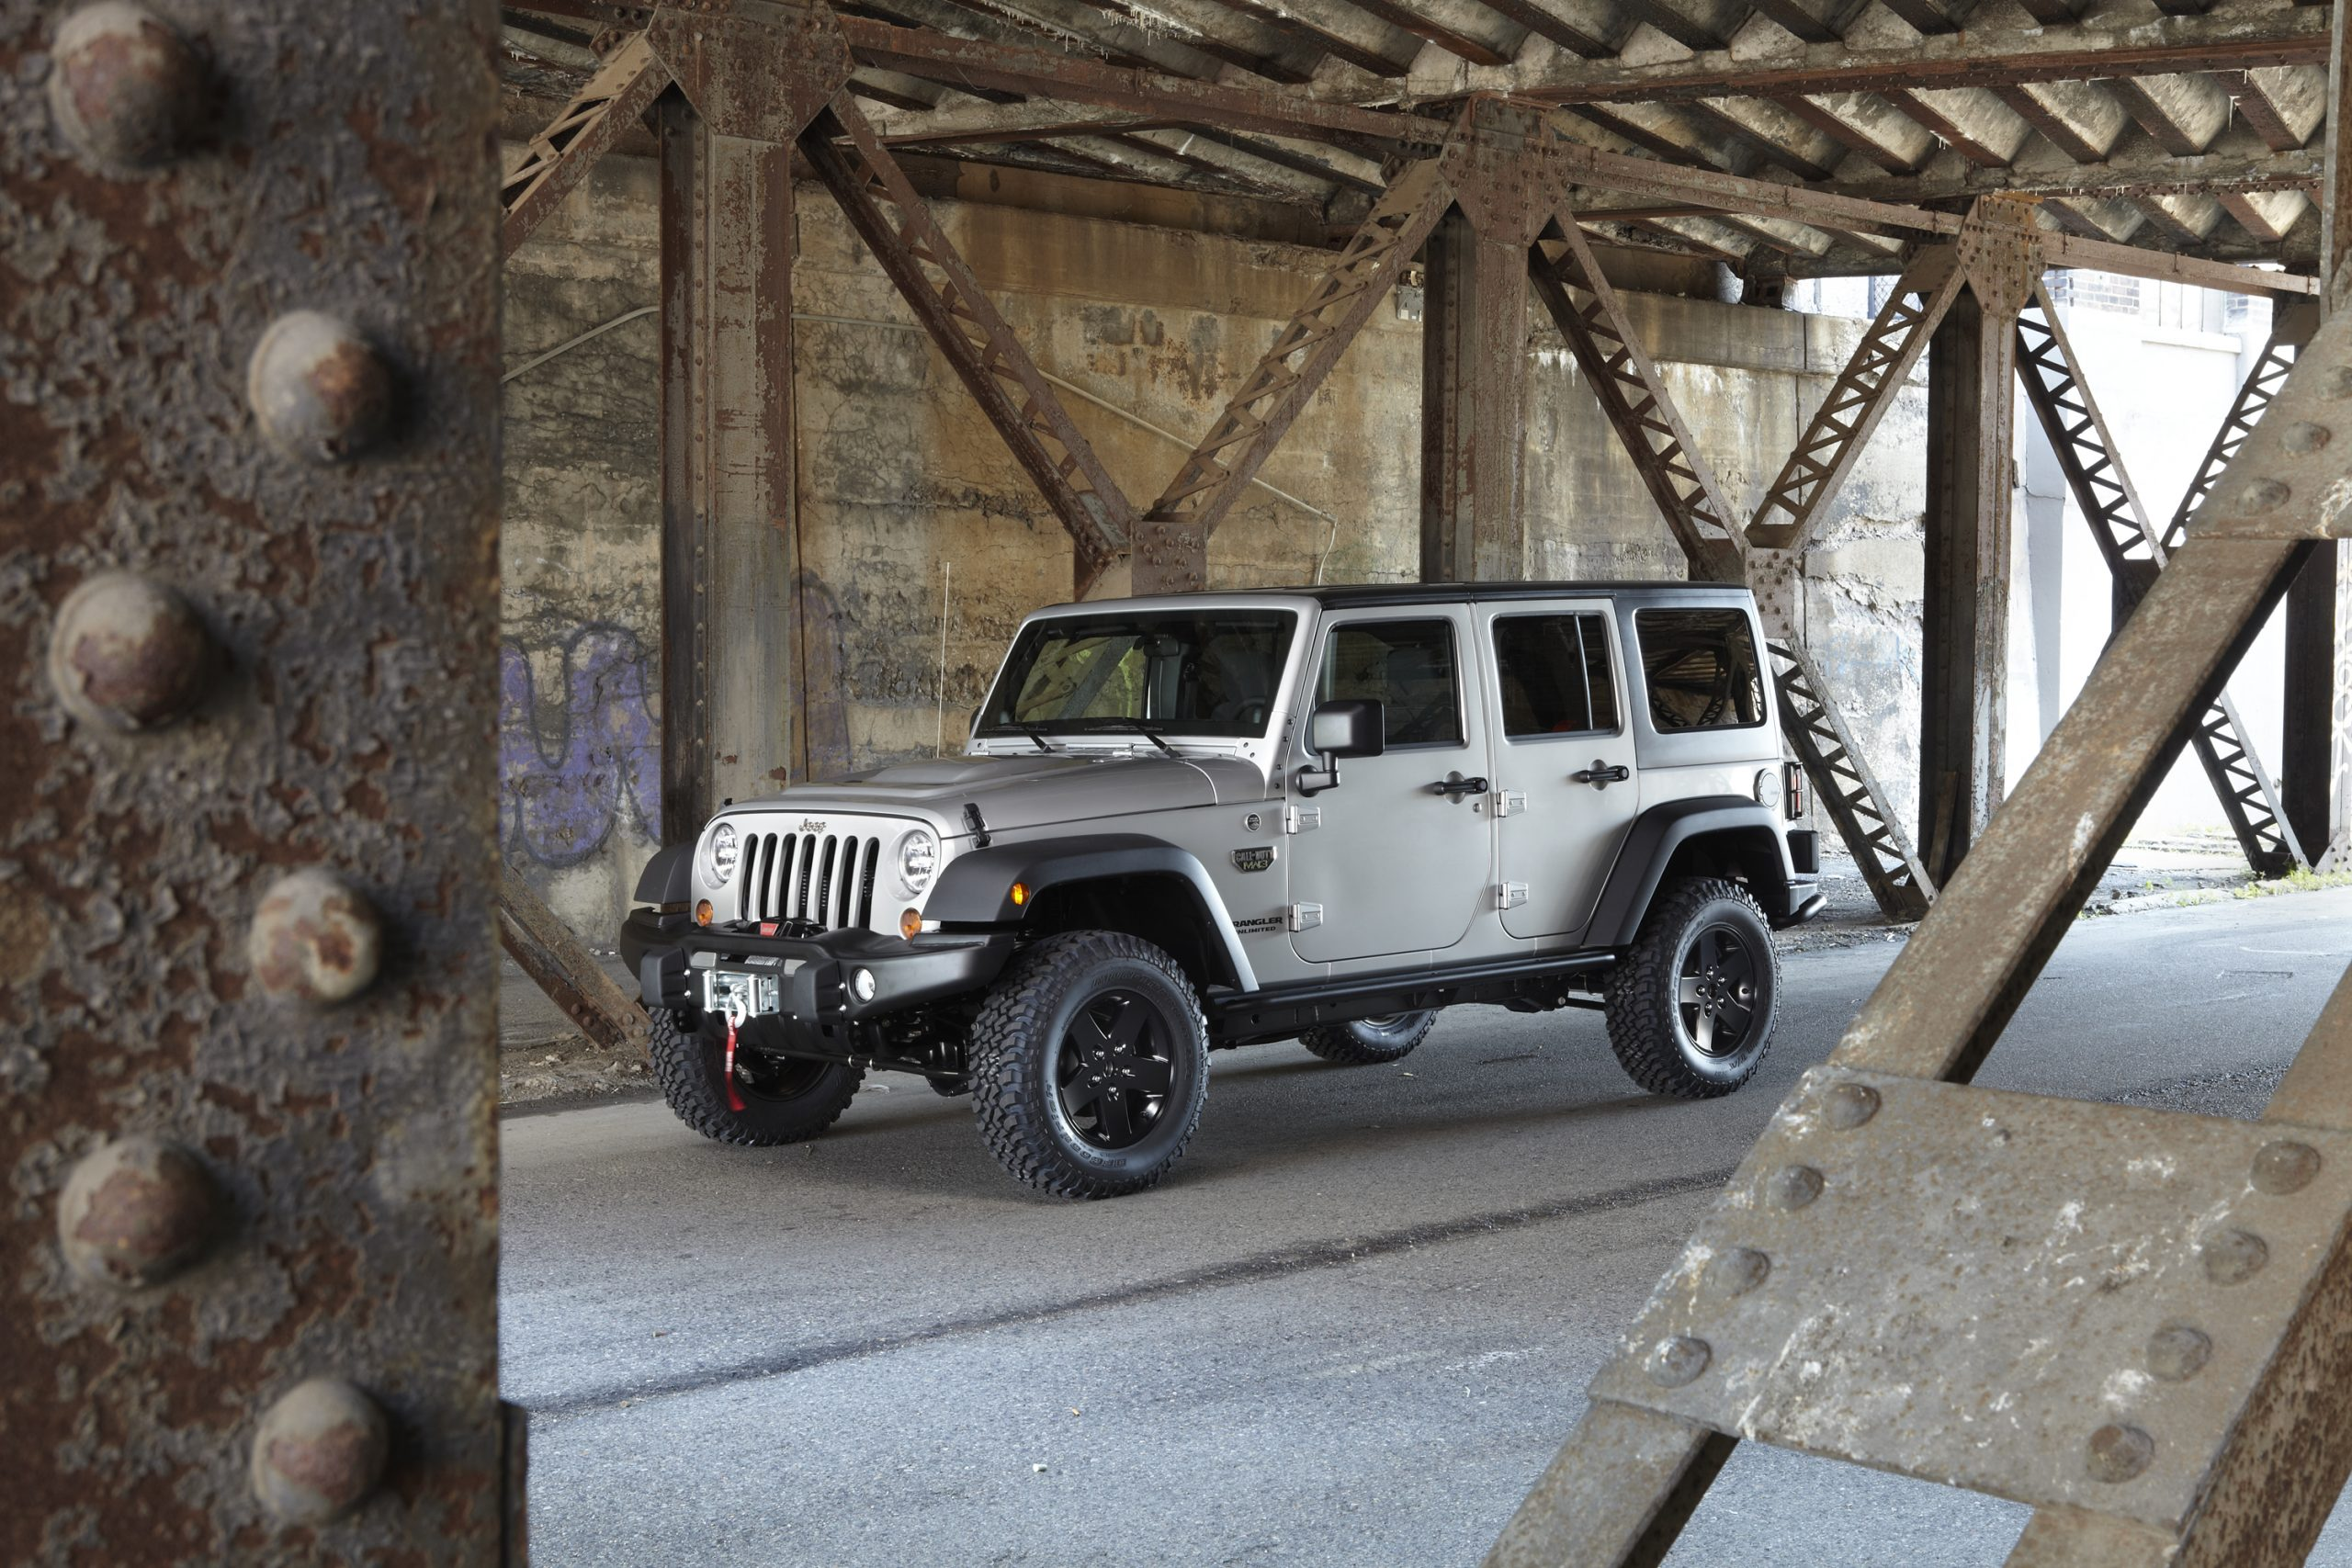 2012 Jeep Wrangler Call of Duty:Ê MW3 Special Edition